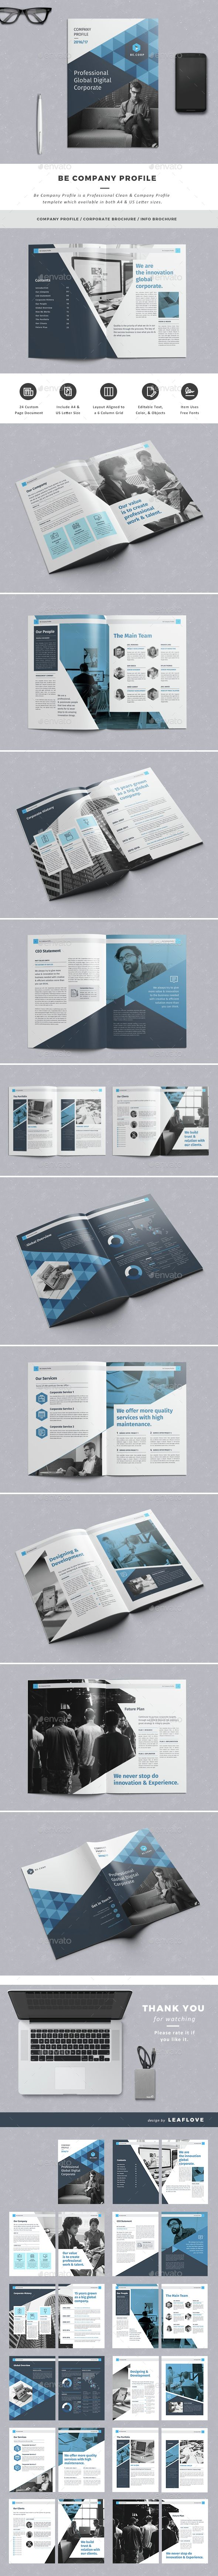 Be Company Profile Template InDesign INDD. Download here: http://graphicriver.net/item/be-company-profile/15390810?ref=ksioks